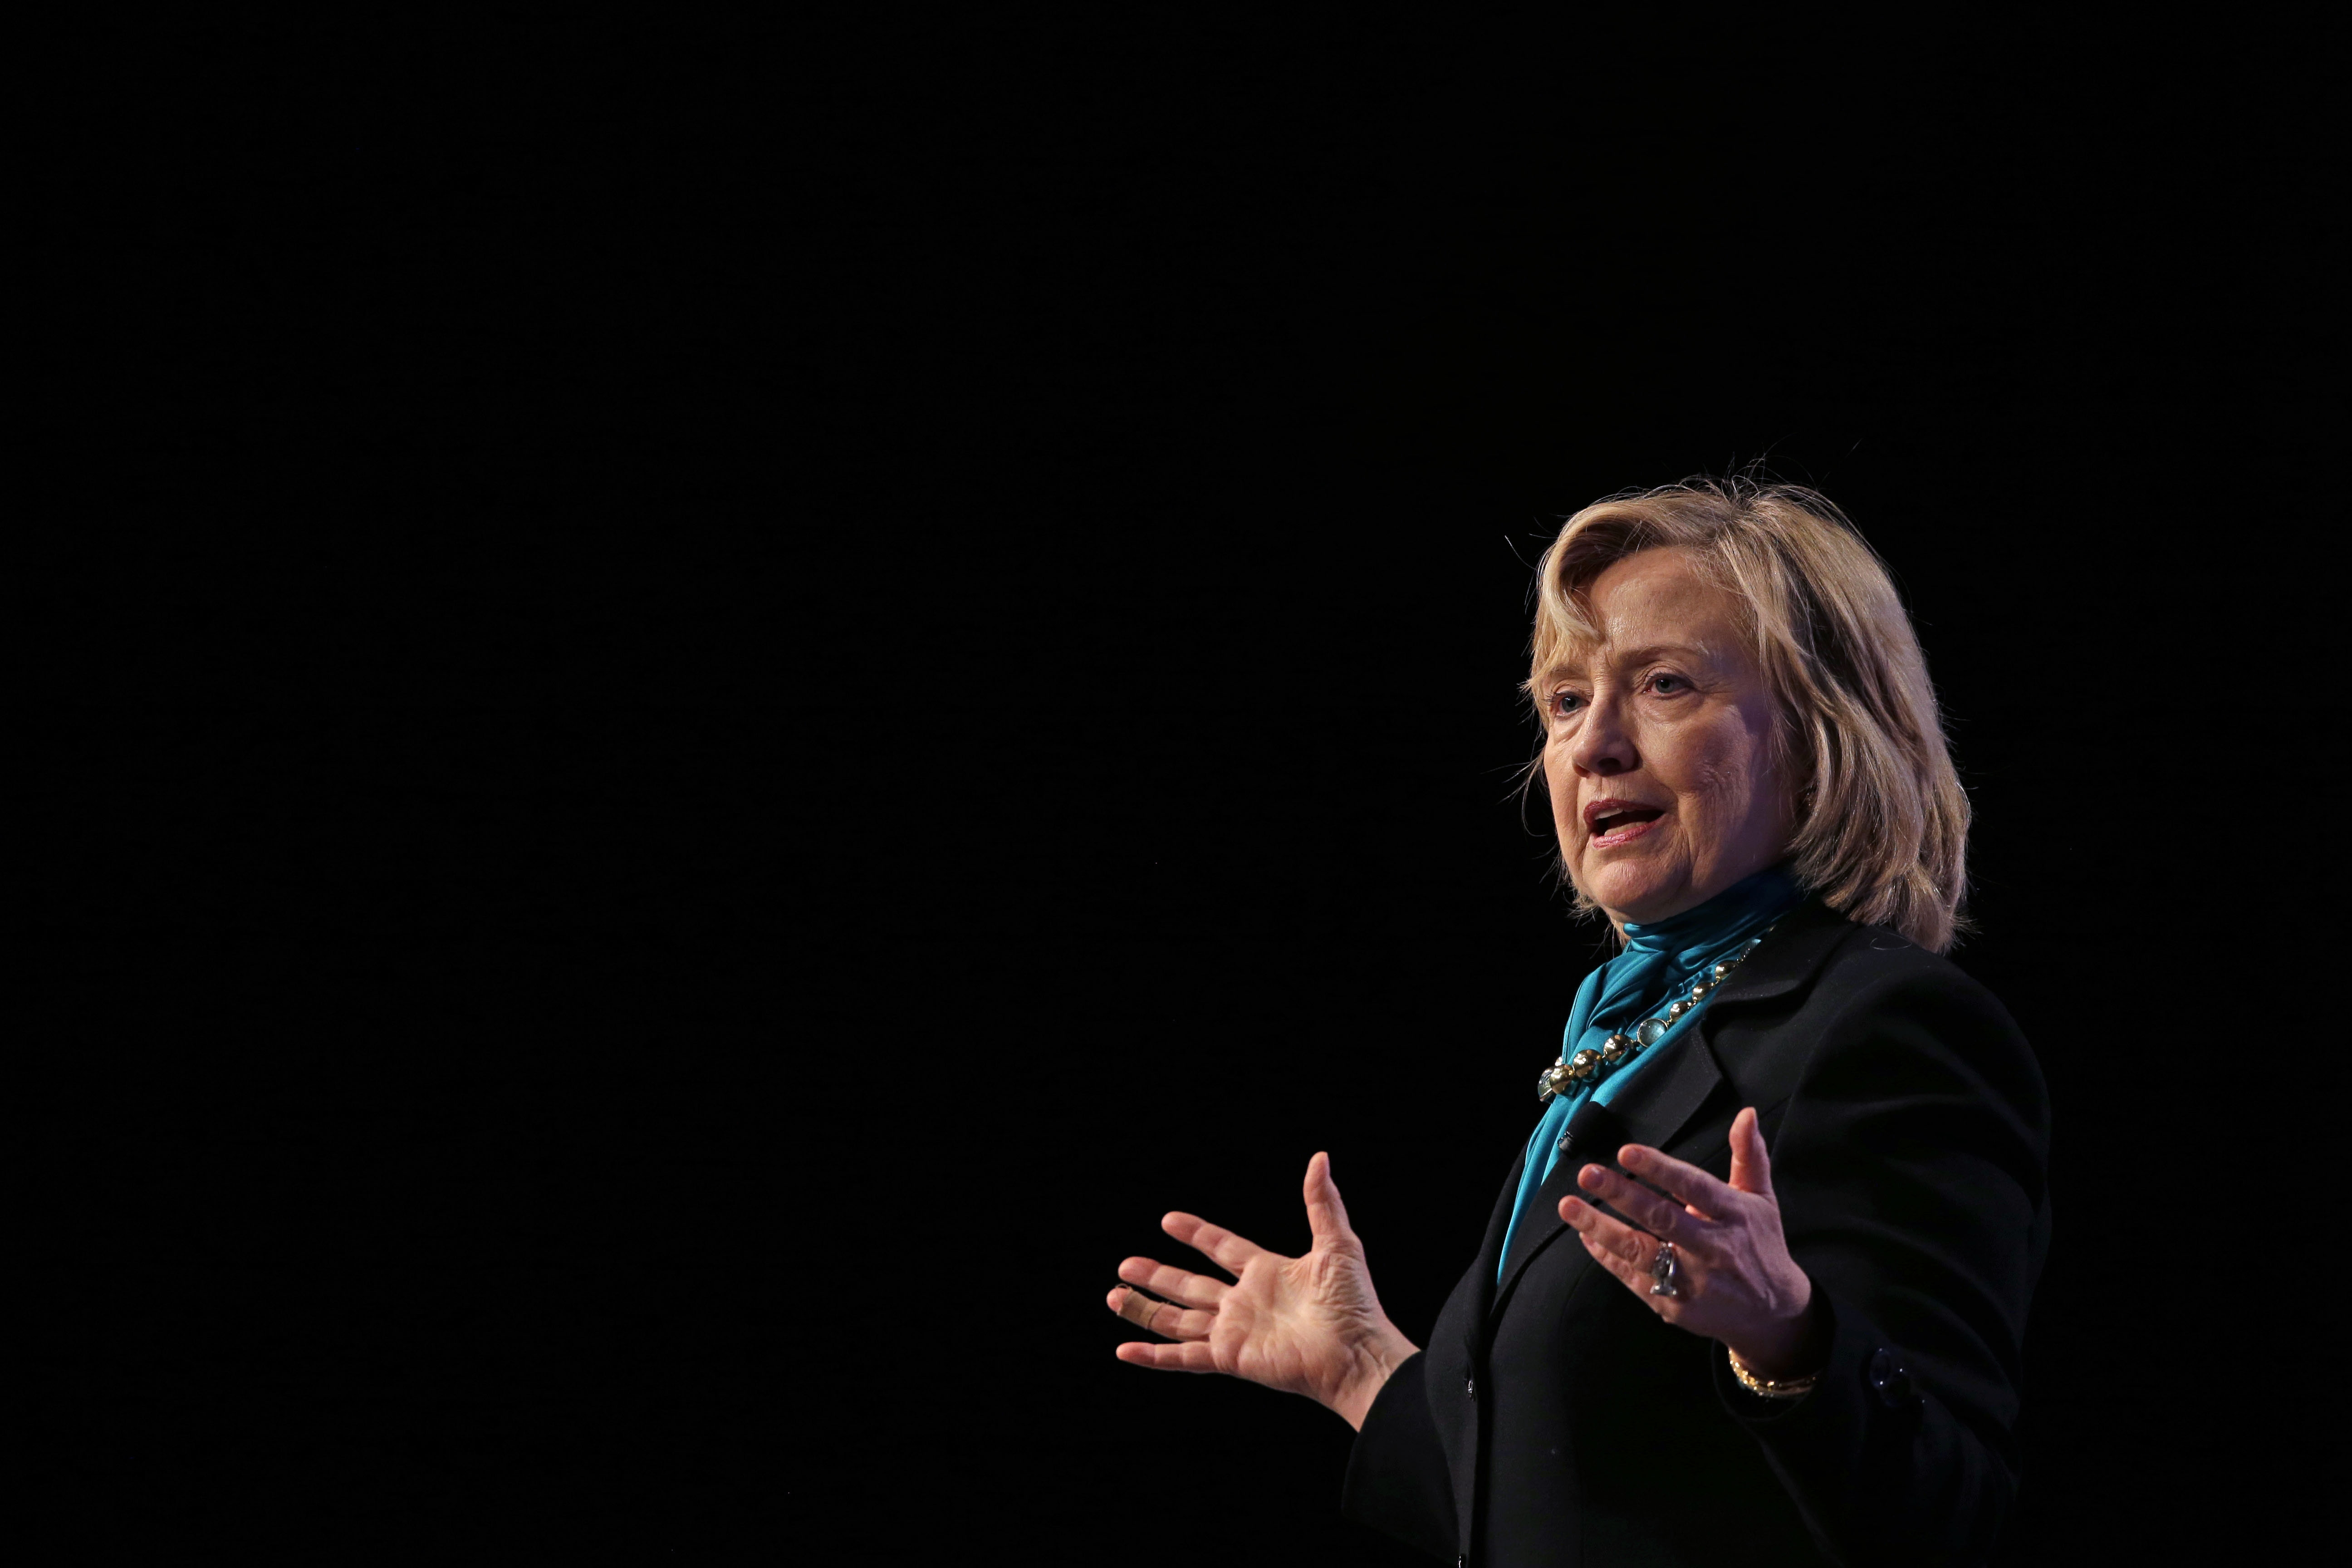 Former Secretary of State Hillary Rodham Clinton delivers remarks to the National Automobile Dealers Association's meeting in New Orleans on Jan. 27, 2014